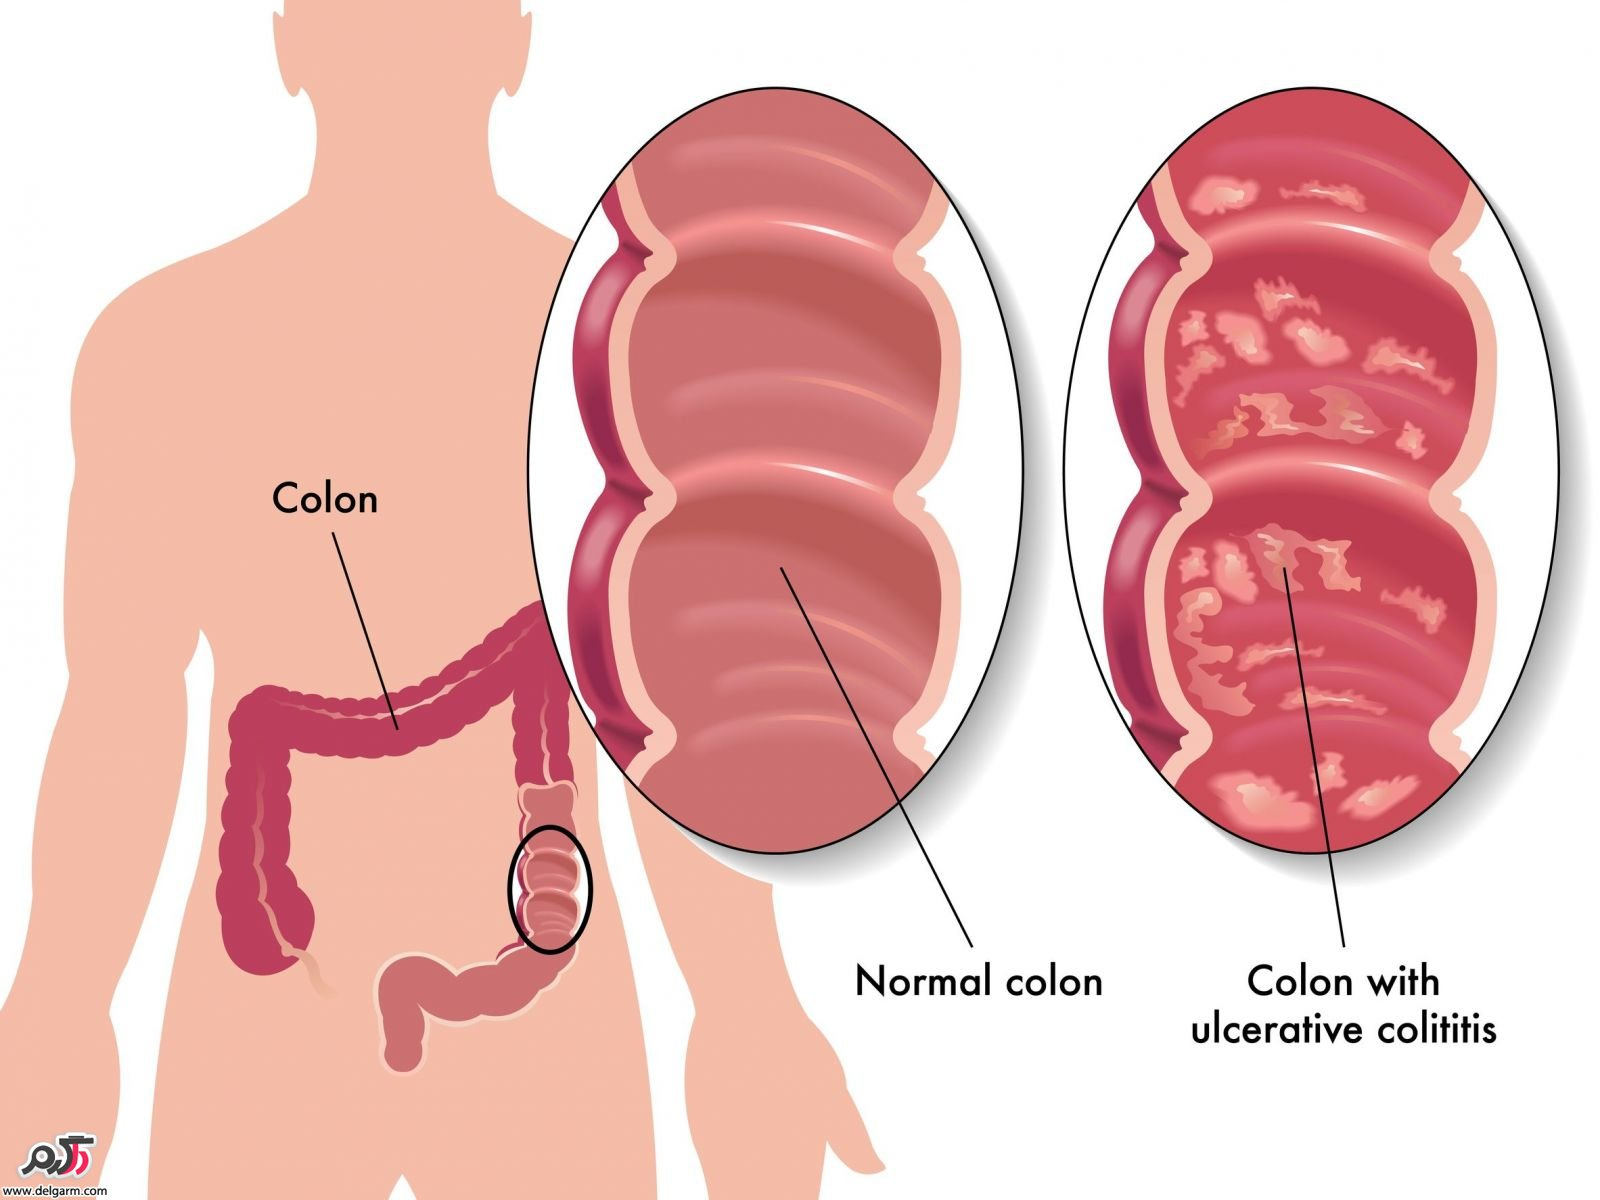 What is ulcerative colitis?